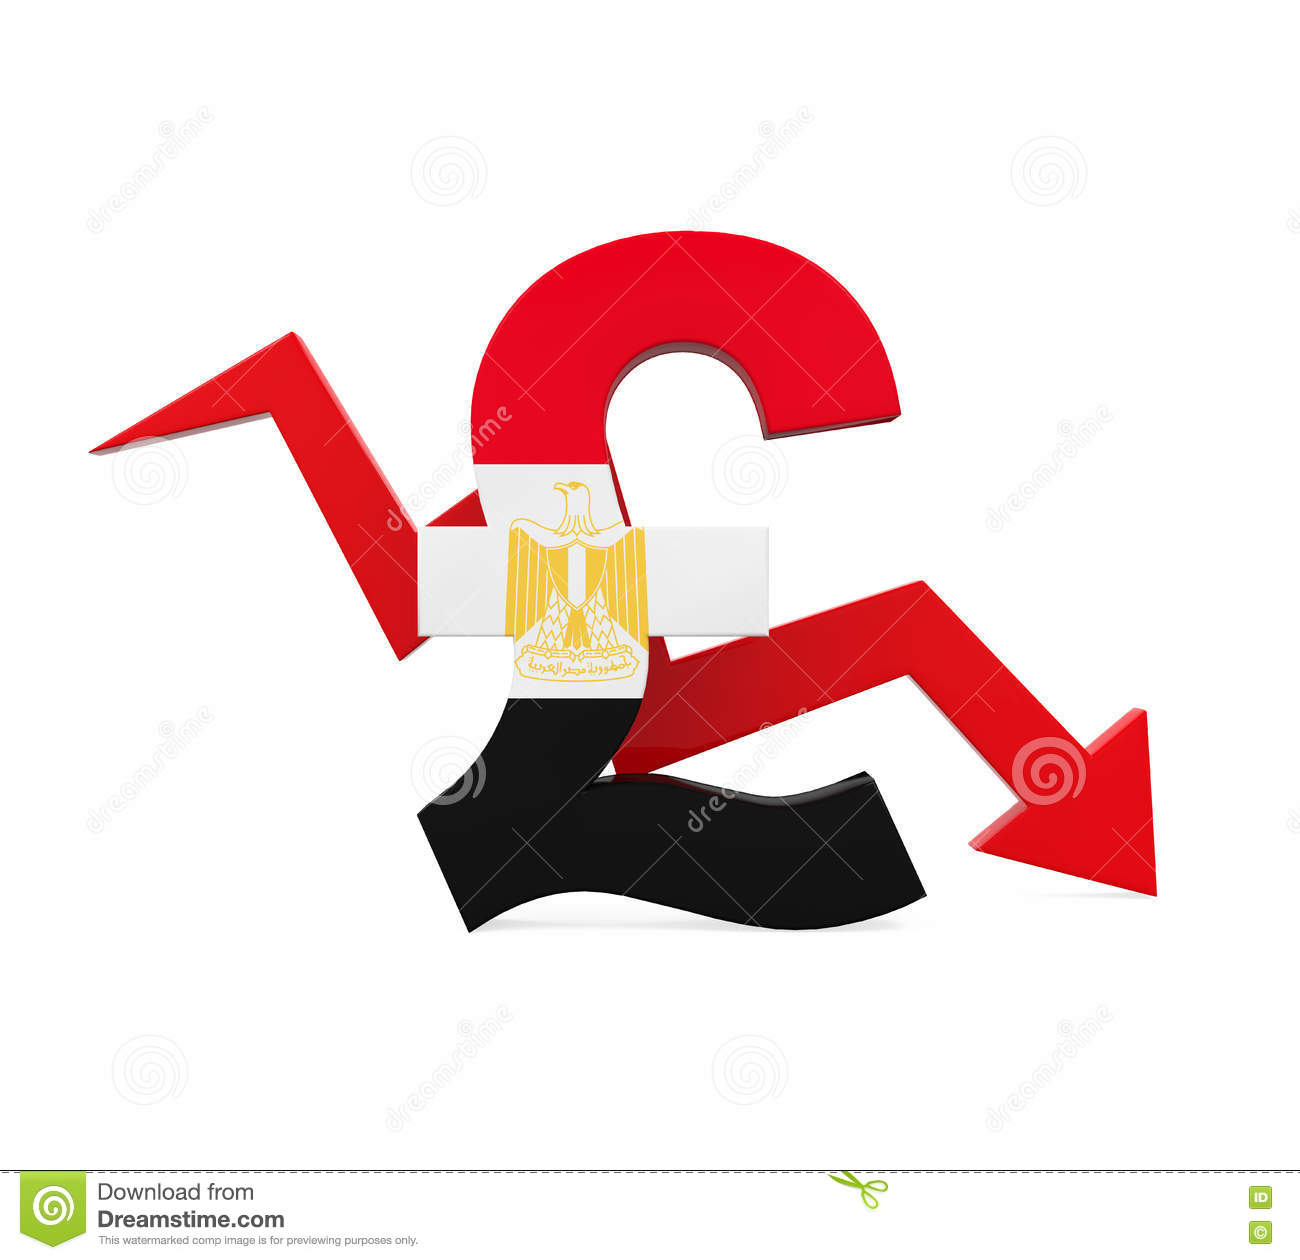 Egyptian Pound Symbol And Red Arrow Stock Illustration